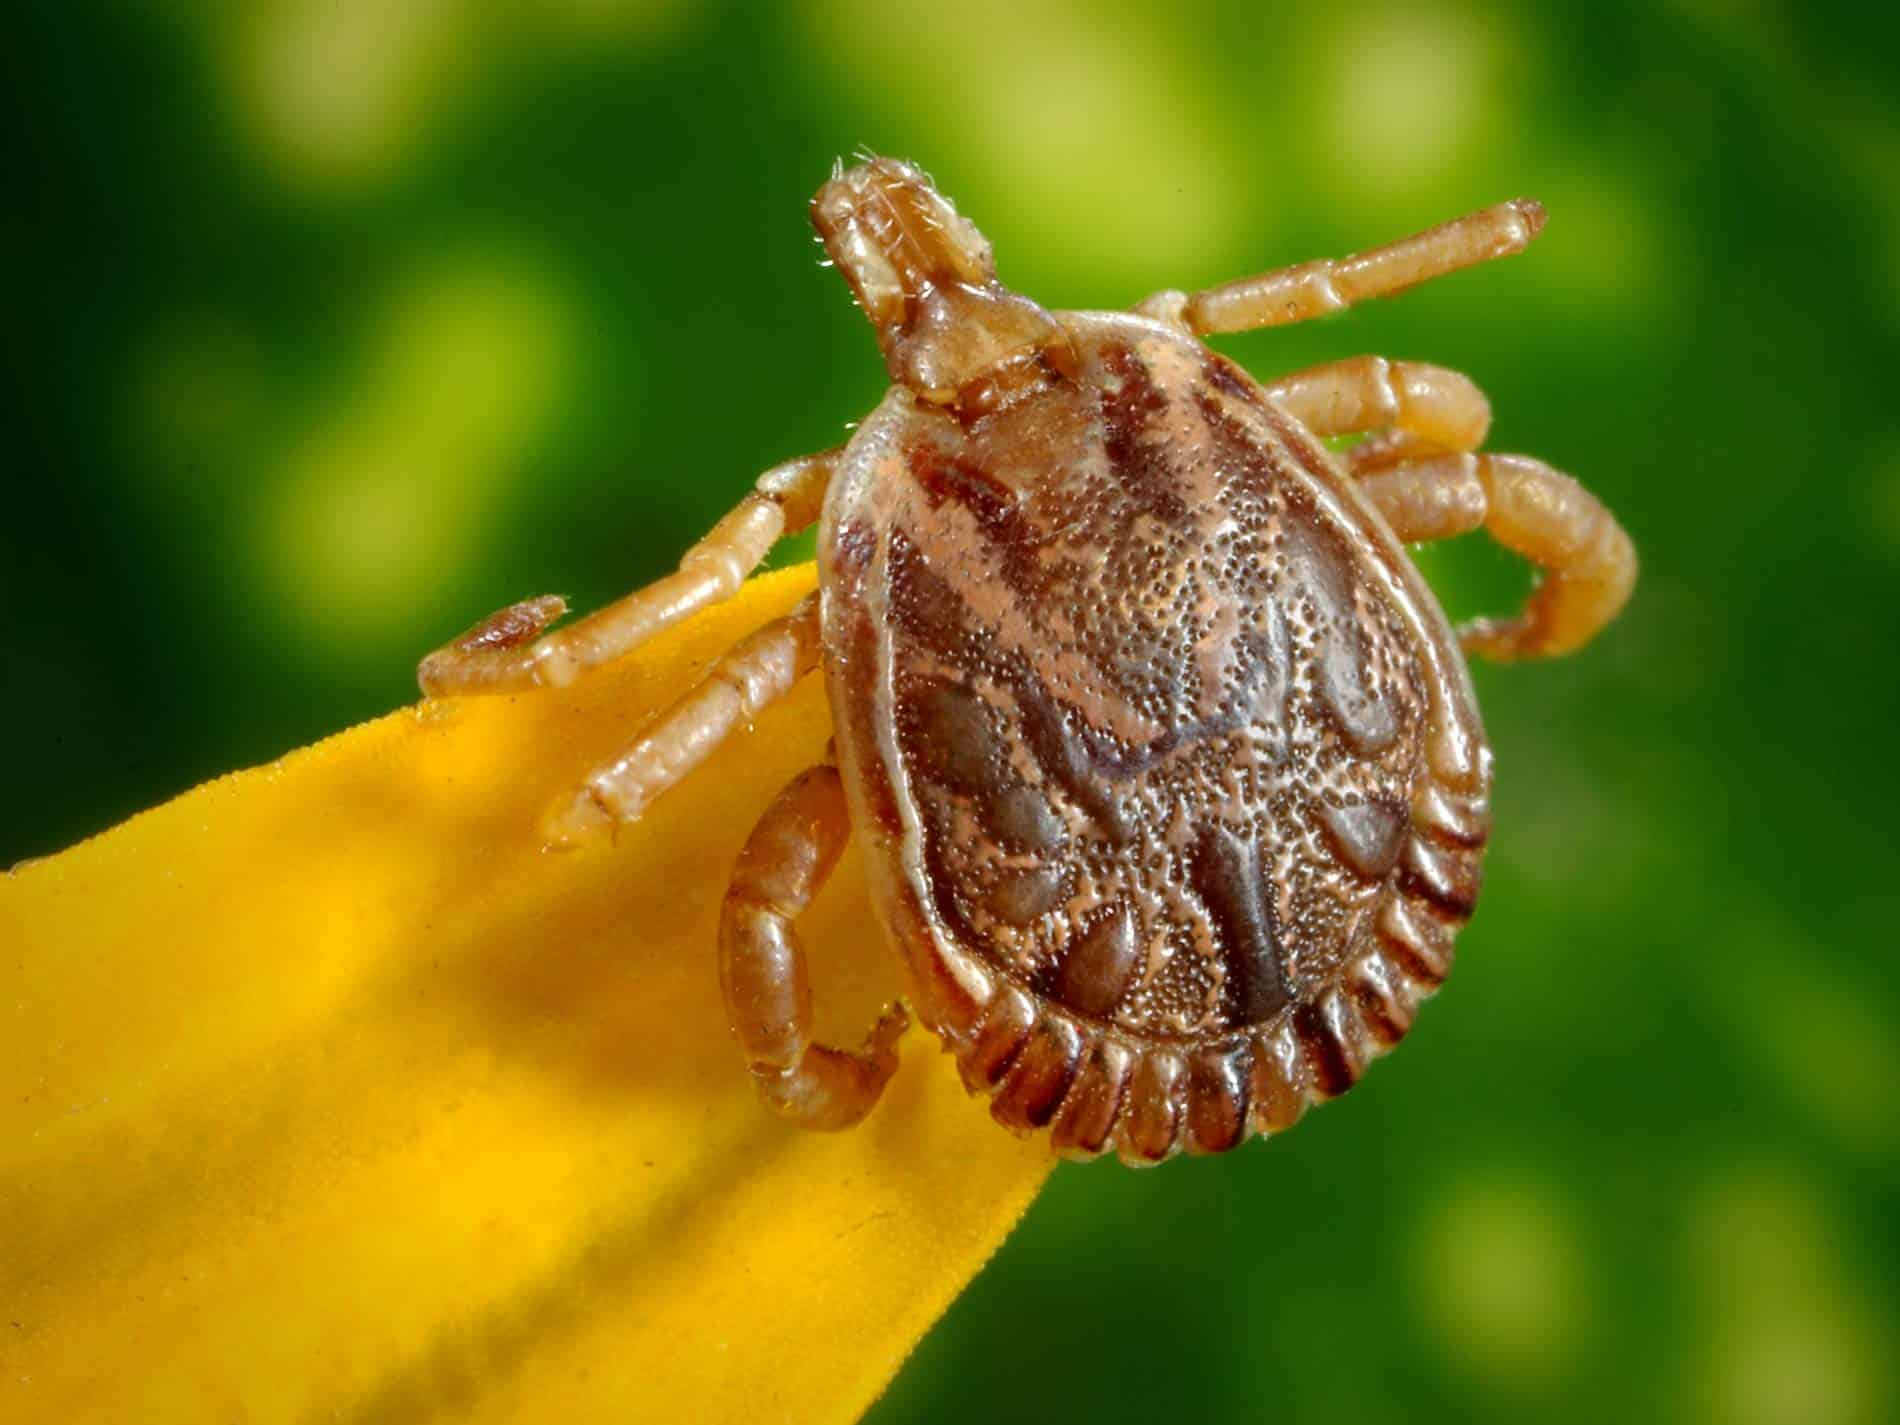 Ticks 101: Lyme Disease Prevention and Tick Removal Kit | Mind Over ...